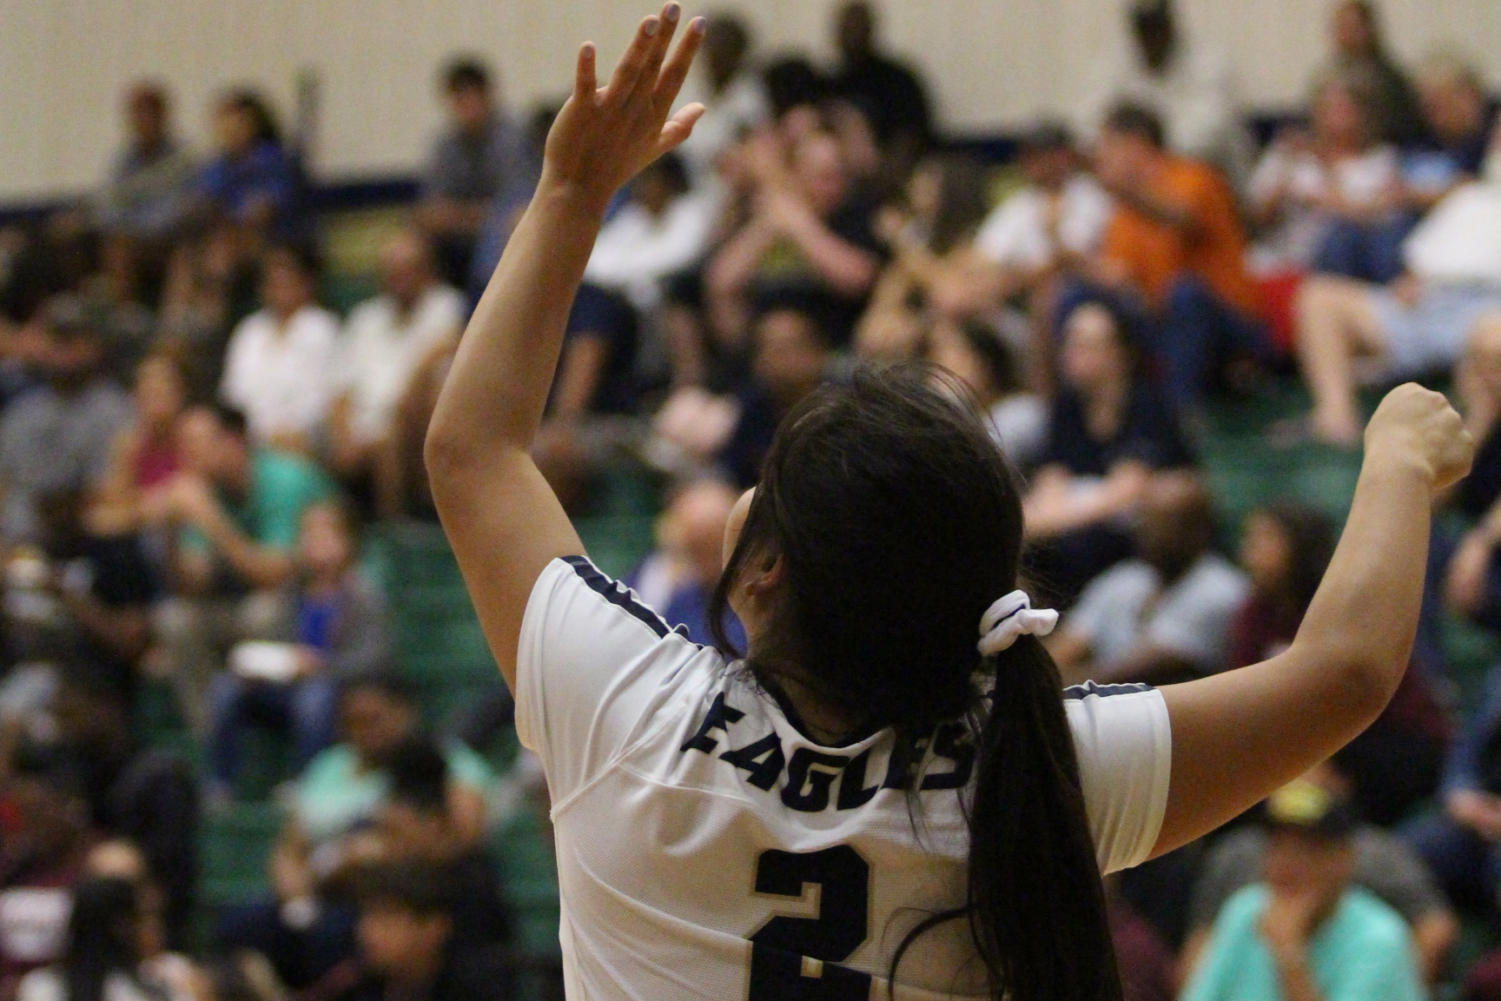 Senior Delia Quiroz serves the ball at an Austin High match. Akins won with a score of 3-2.